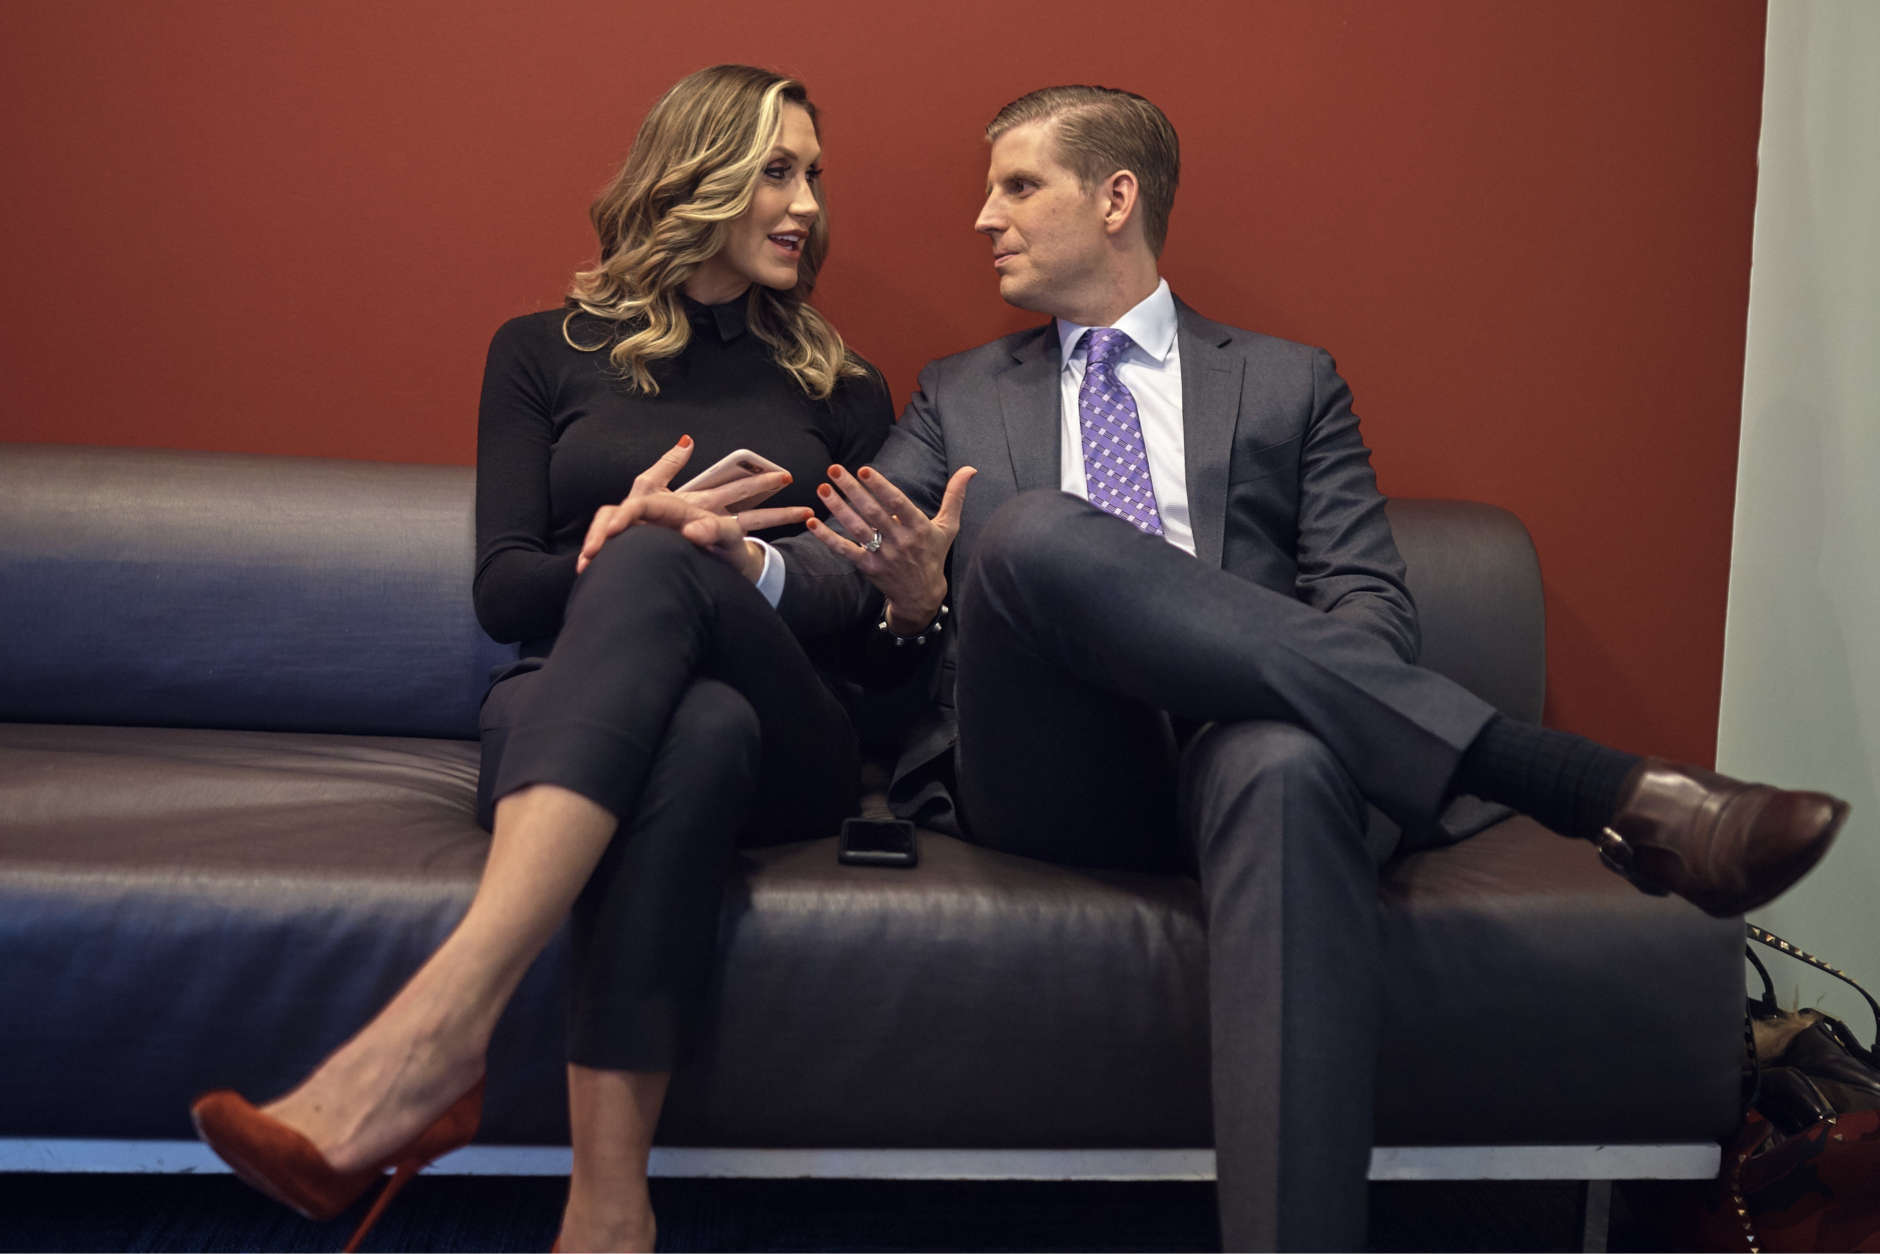 """Eric Trump, right, and Lara Trump, left, wait to tape a segment of """"Justice With Judge Jeanine,"""" at the Fox Studios in New York, Friday, October 13, 2017. The interview is scheduled to air on Saturday, Oct. 14., on the Fox News Network. (AP Photo/Andres Kudacki)"""